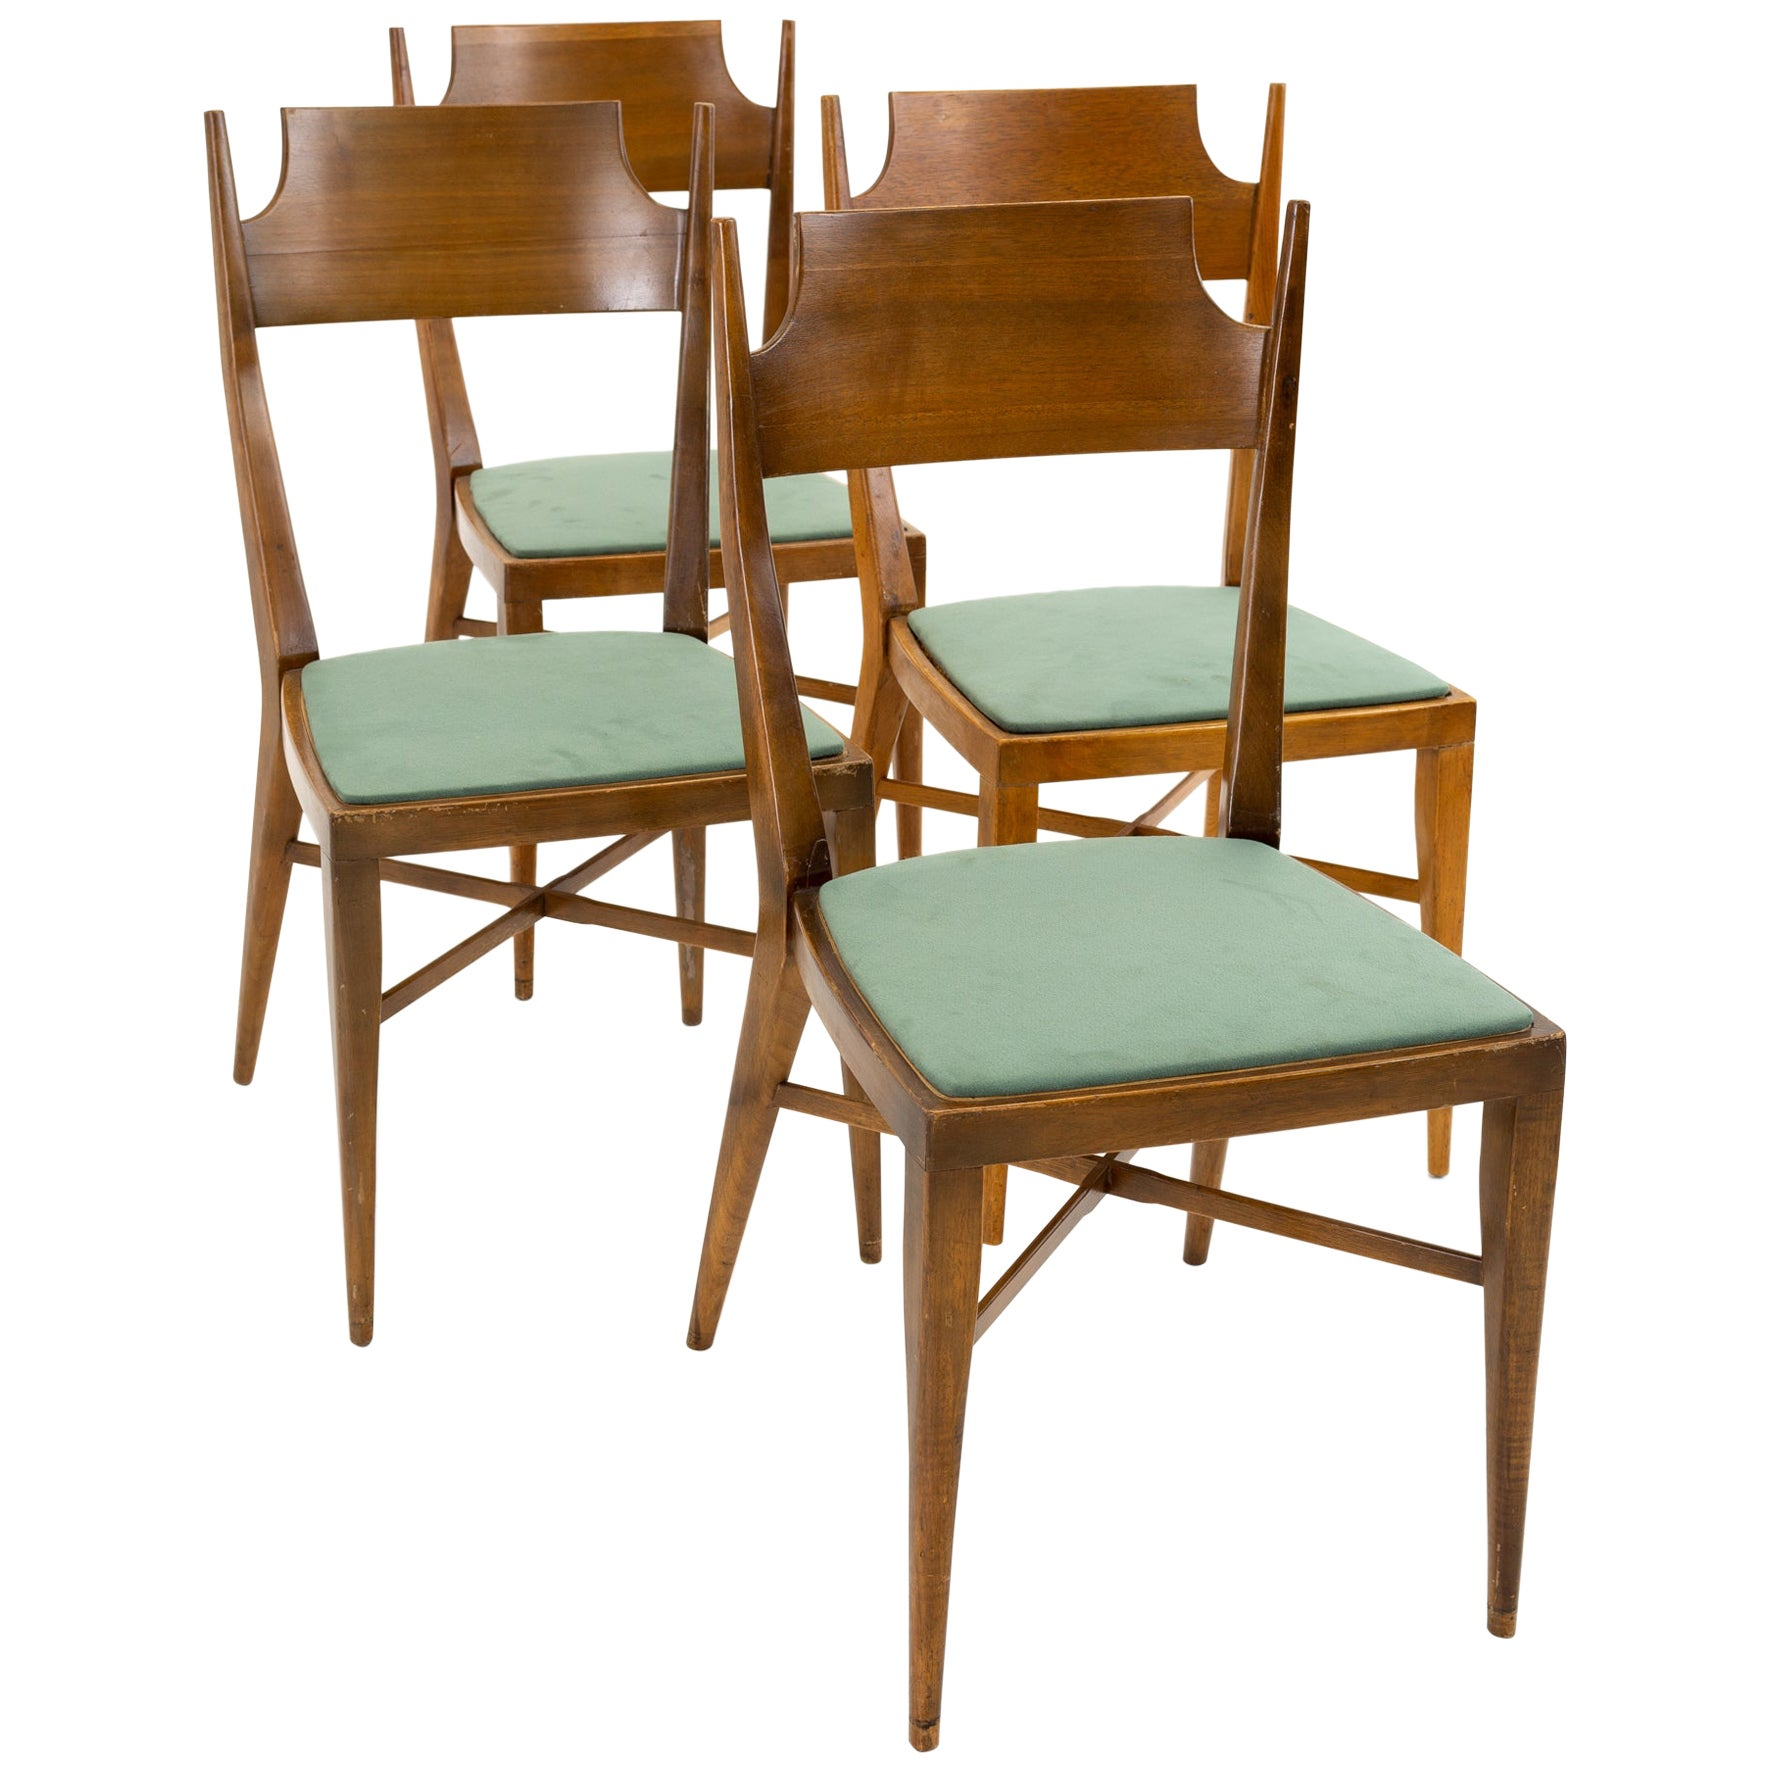 Paul McCobb Mid Century Connoisseur Dining Chairs, Set of 4